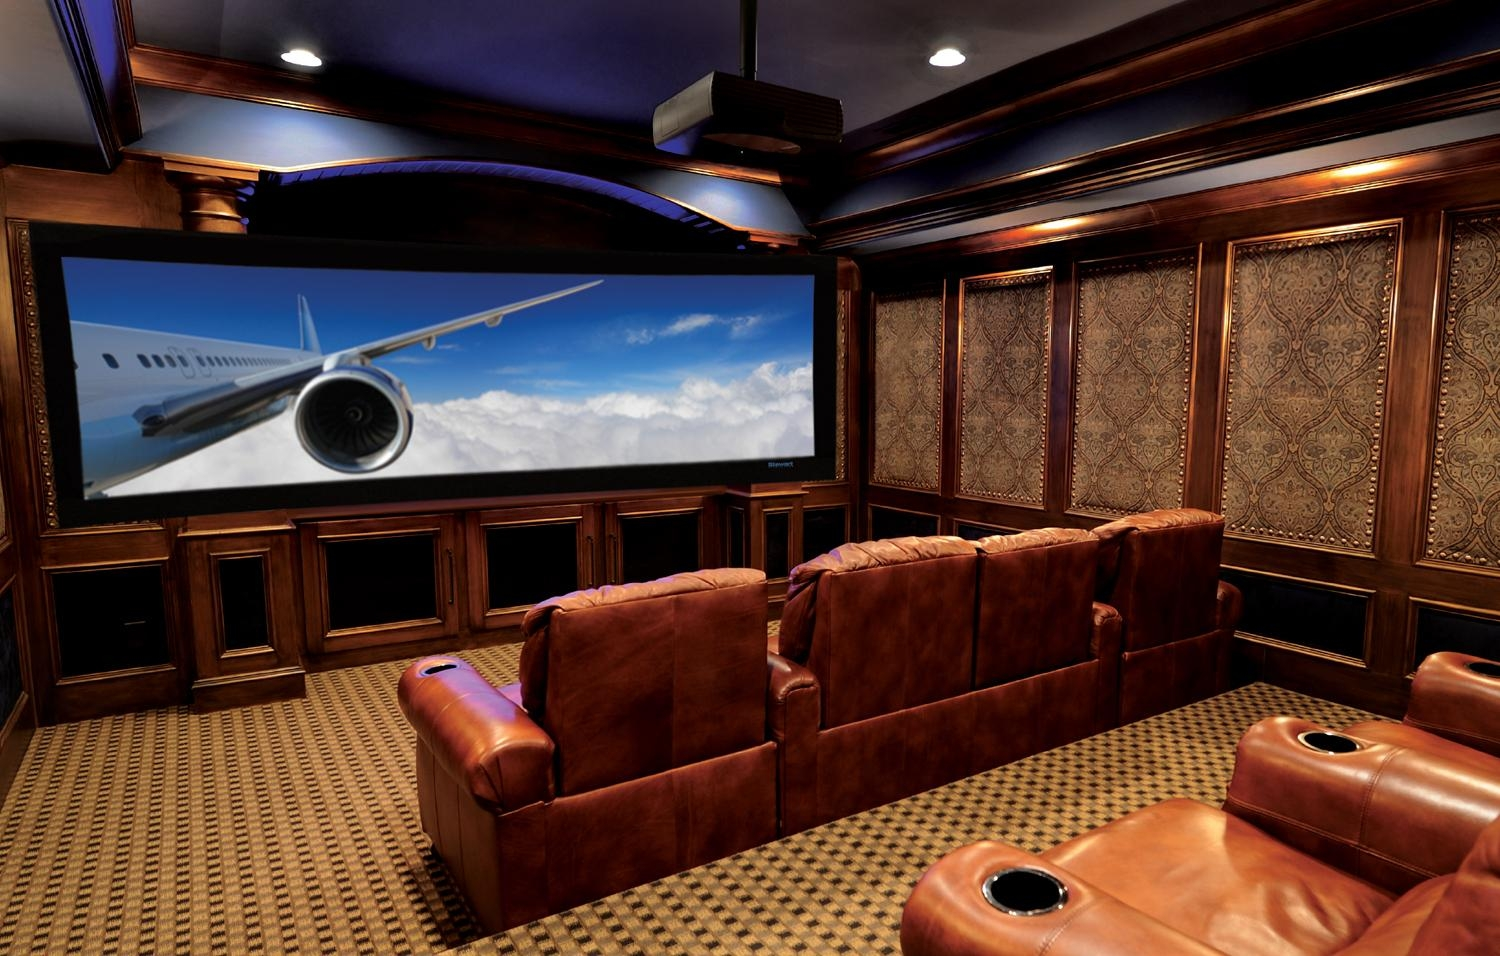 Best 25+ Home Theater Screens Ideas On Pinterest | Home Theater Intended For Theater Room Sofas (Image 1 of 20)